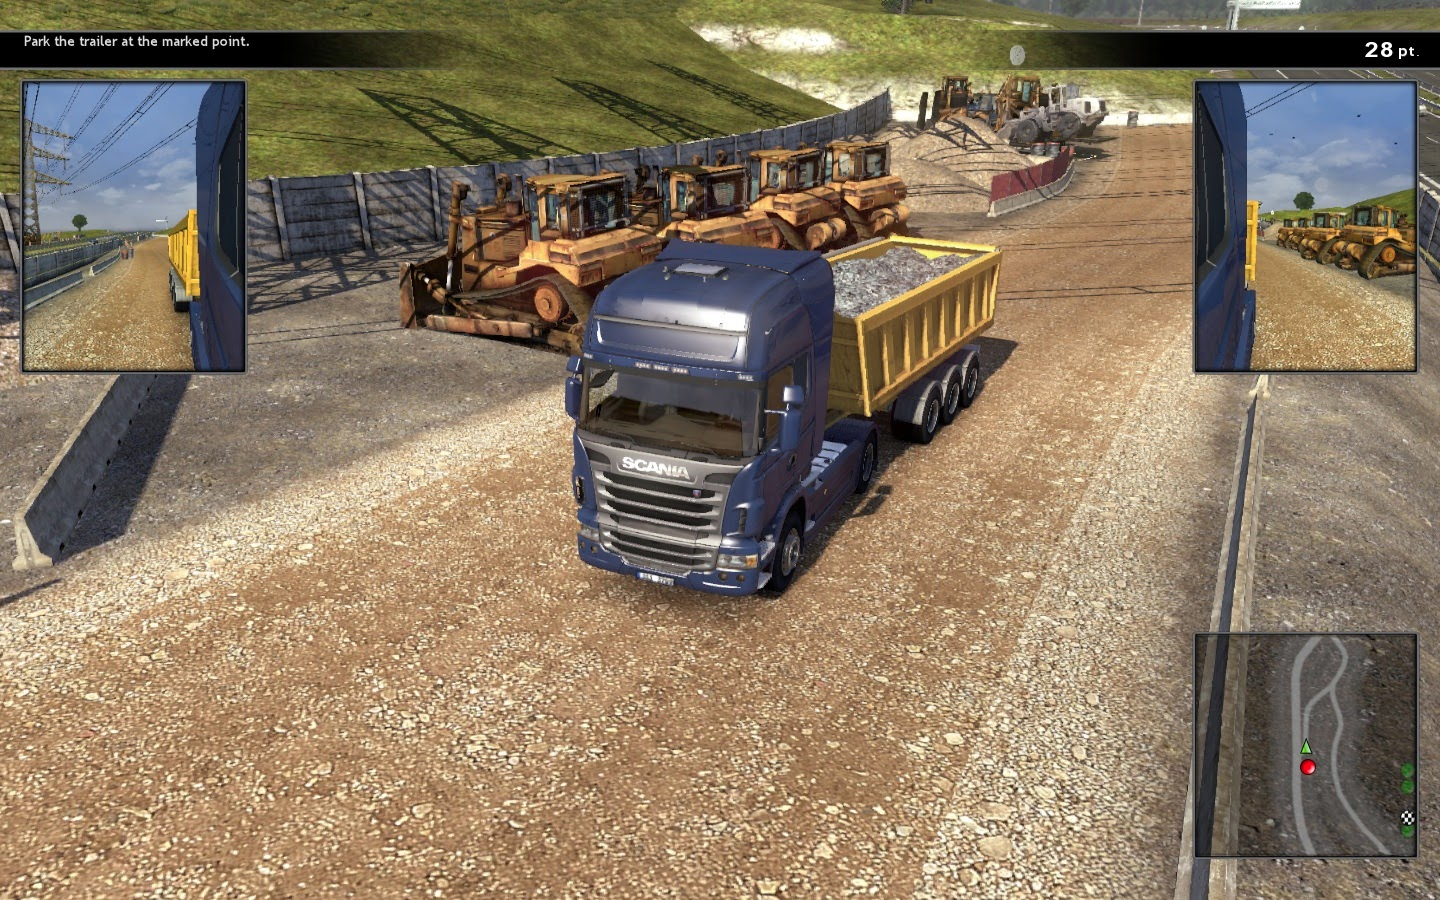 Scania Truck Driving Simulator The Game Pc Full Version